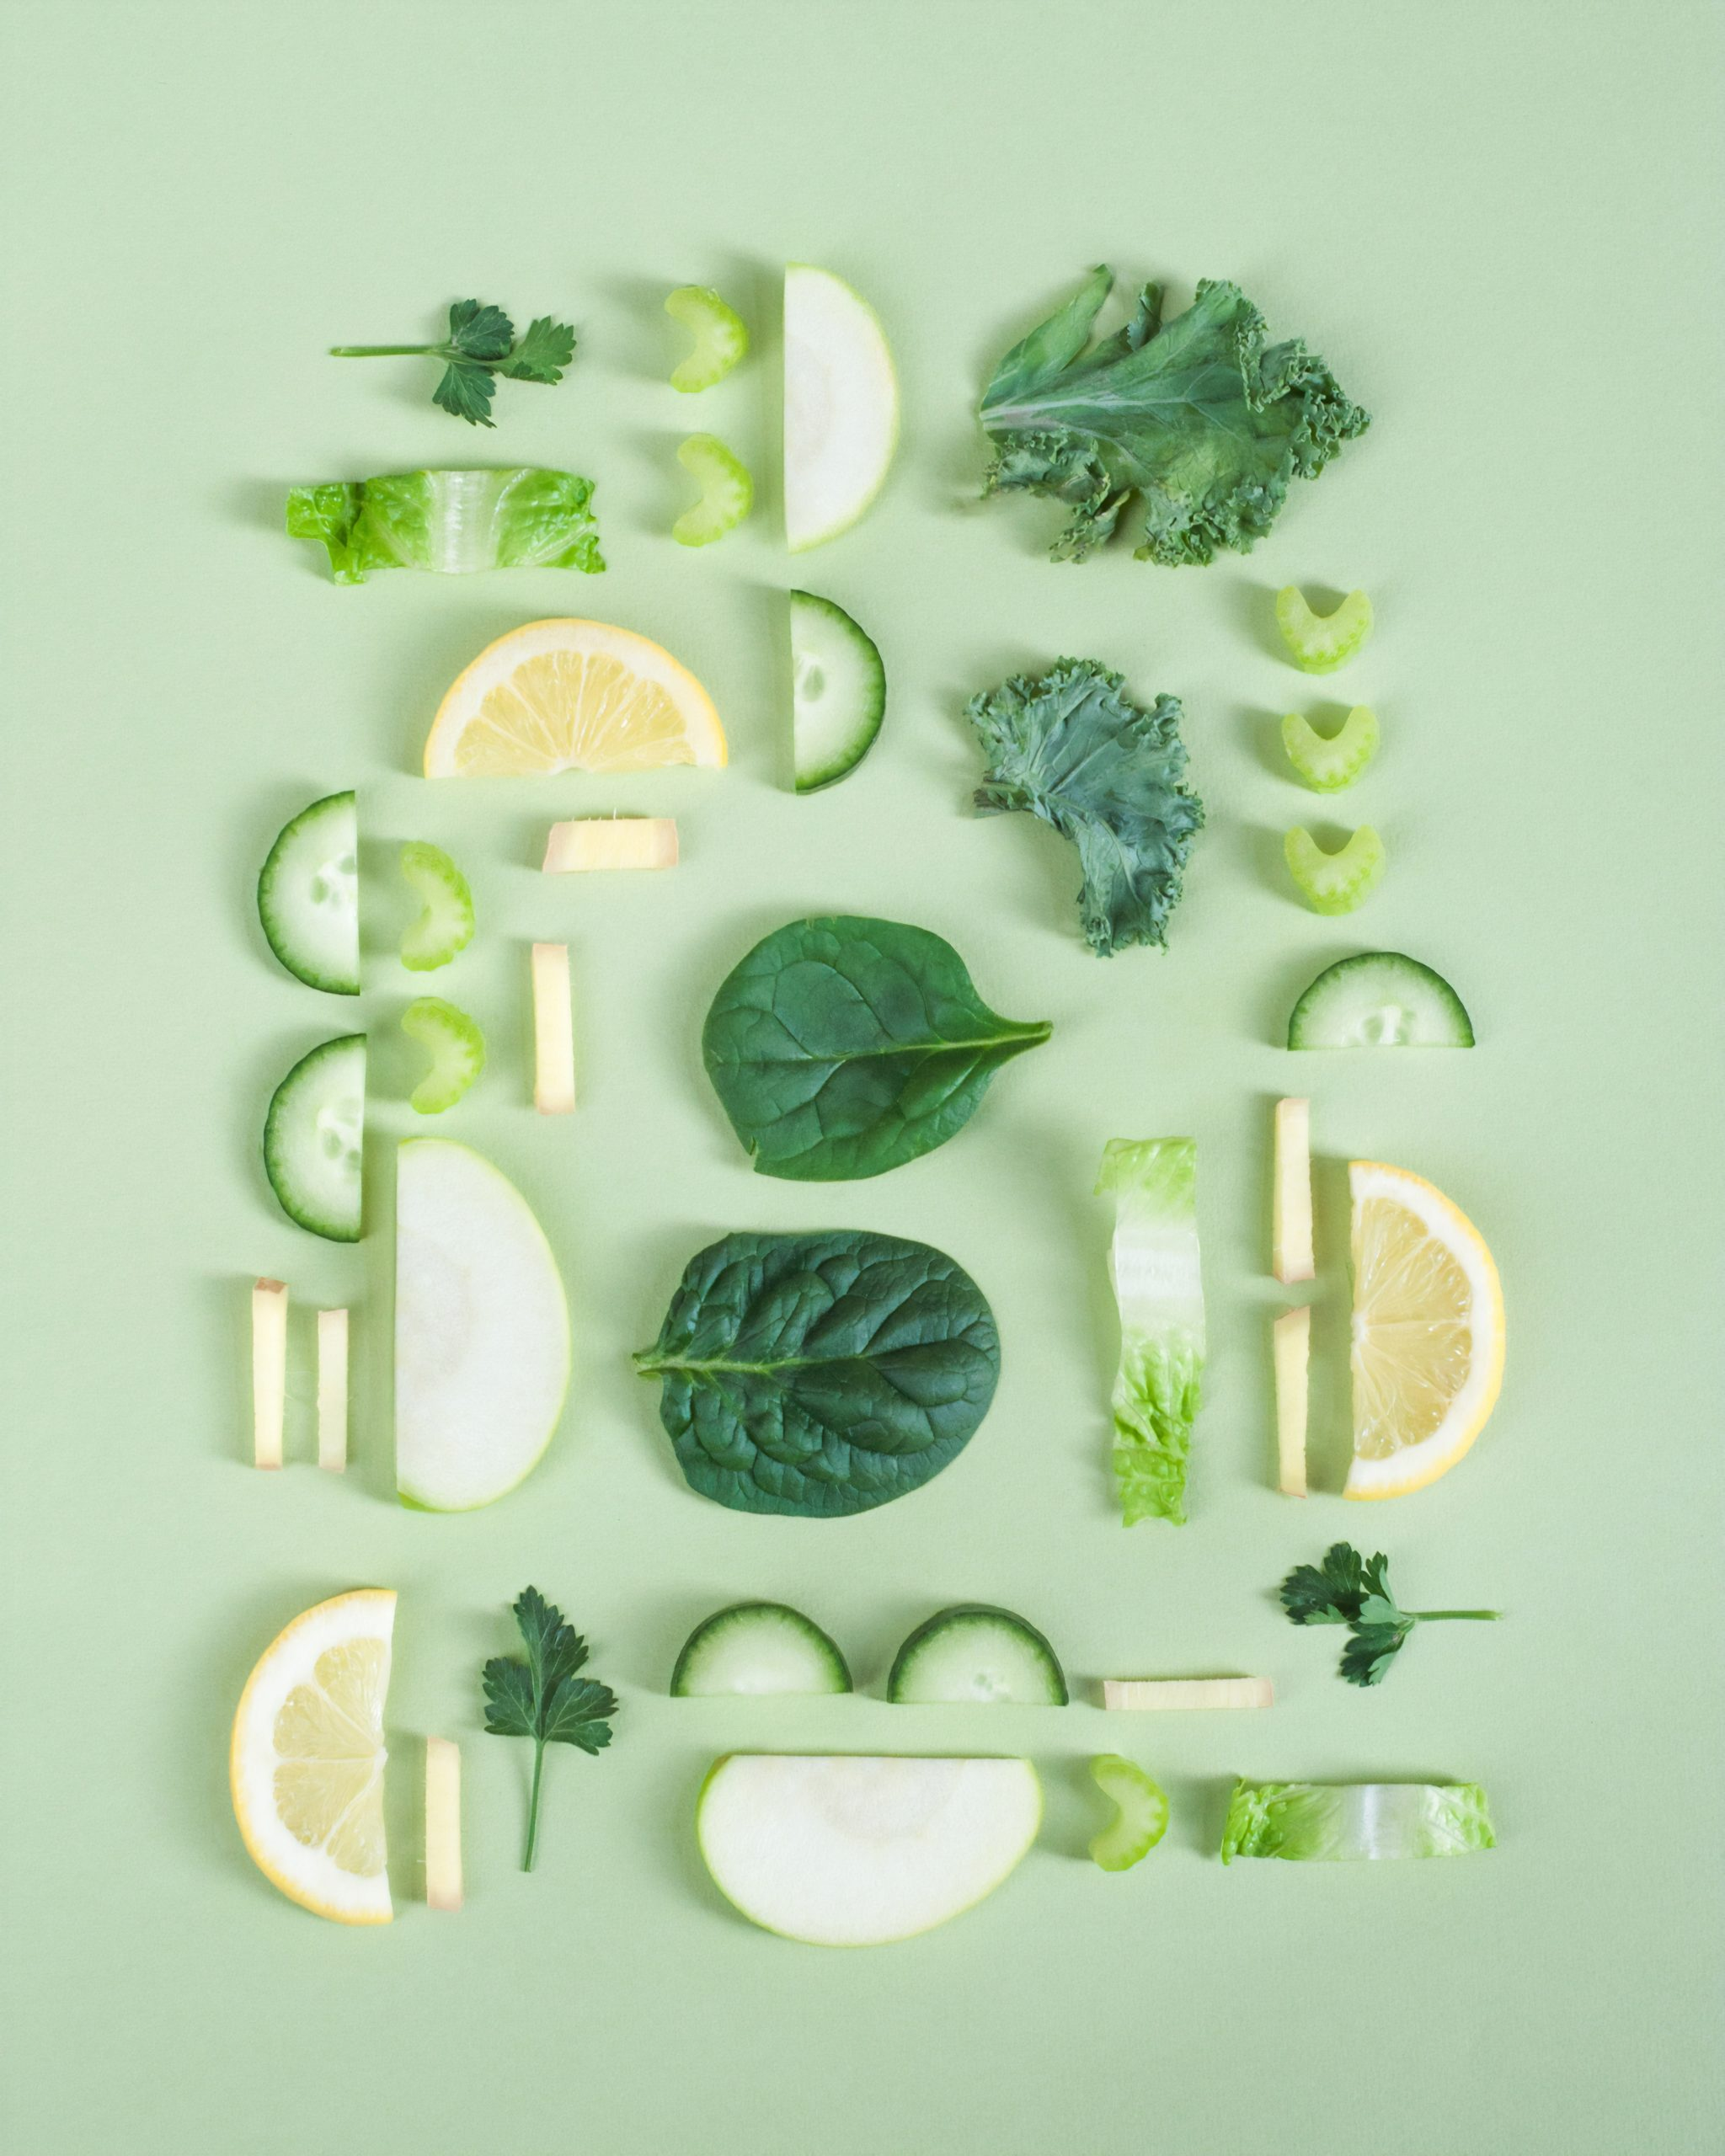 Nutrients Essential For The Growth Of Our Body